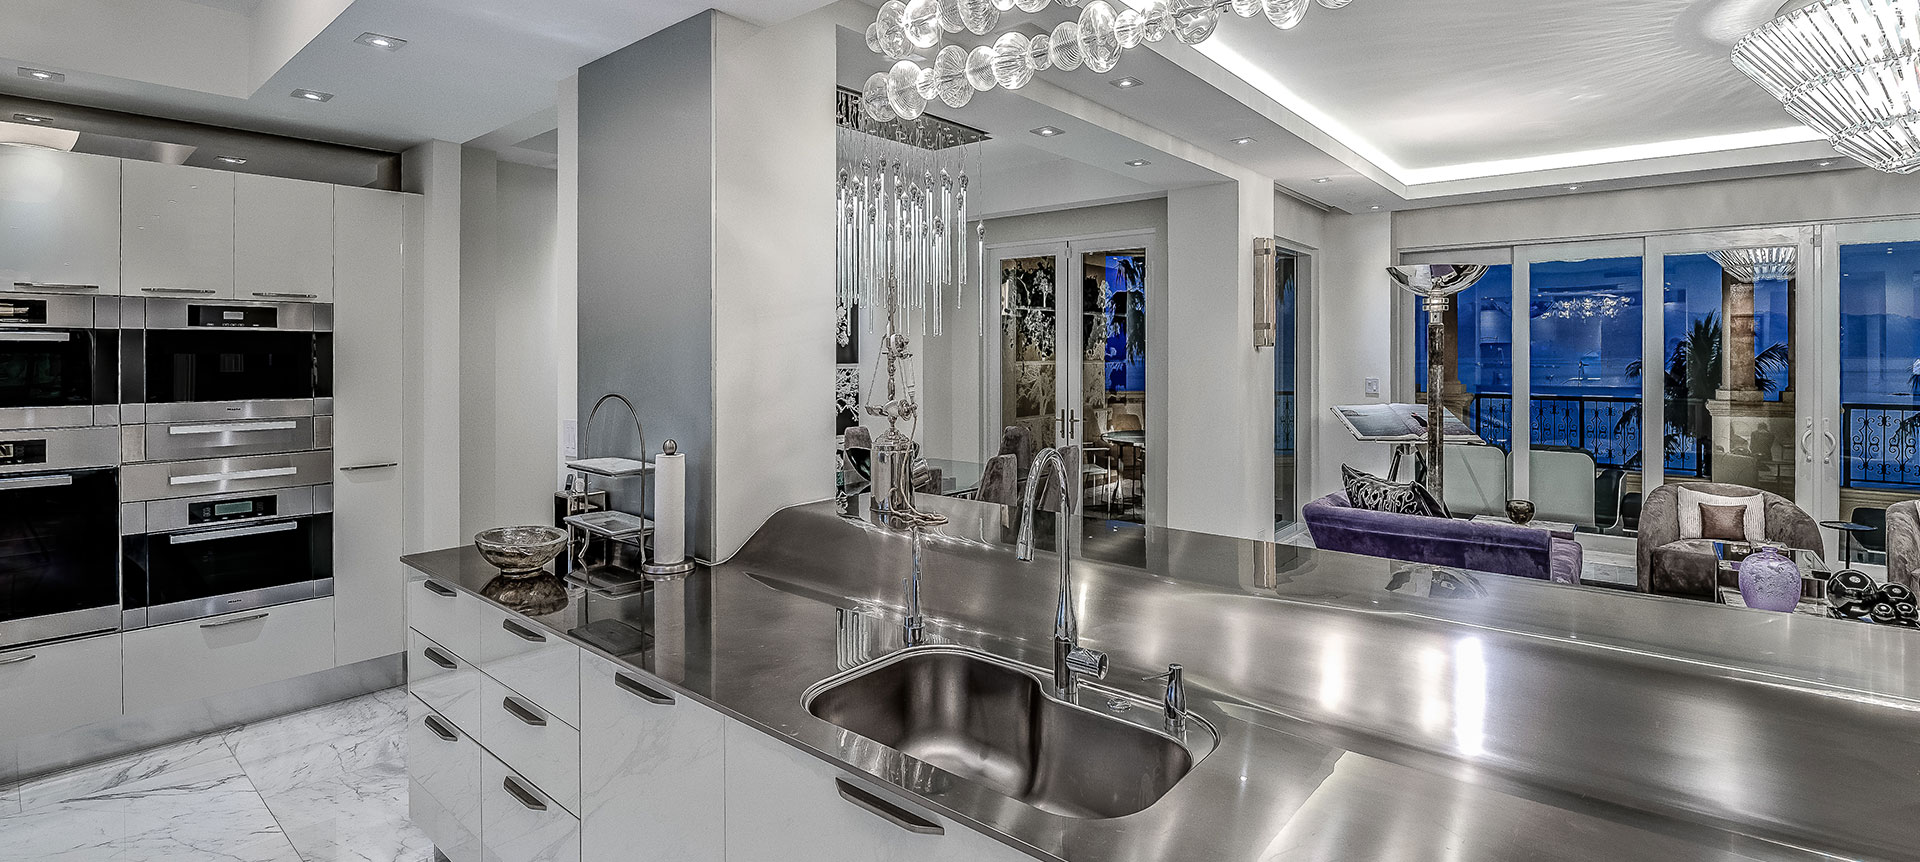 Home fort lauderdale interior design interior for International decor group